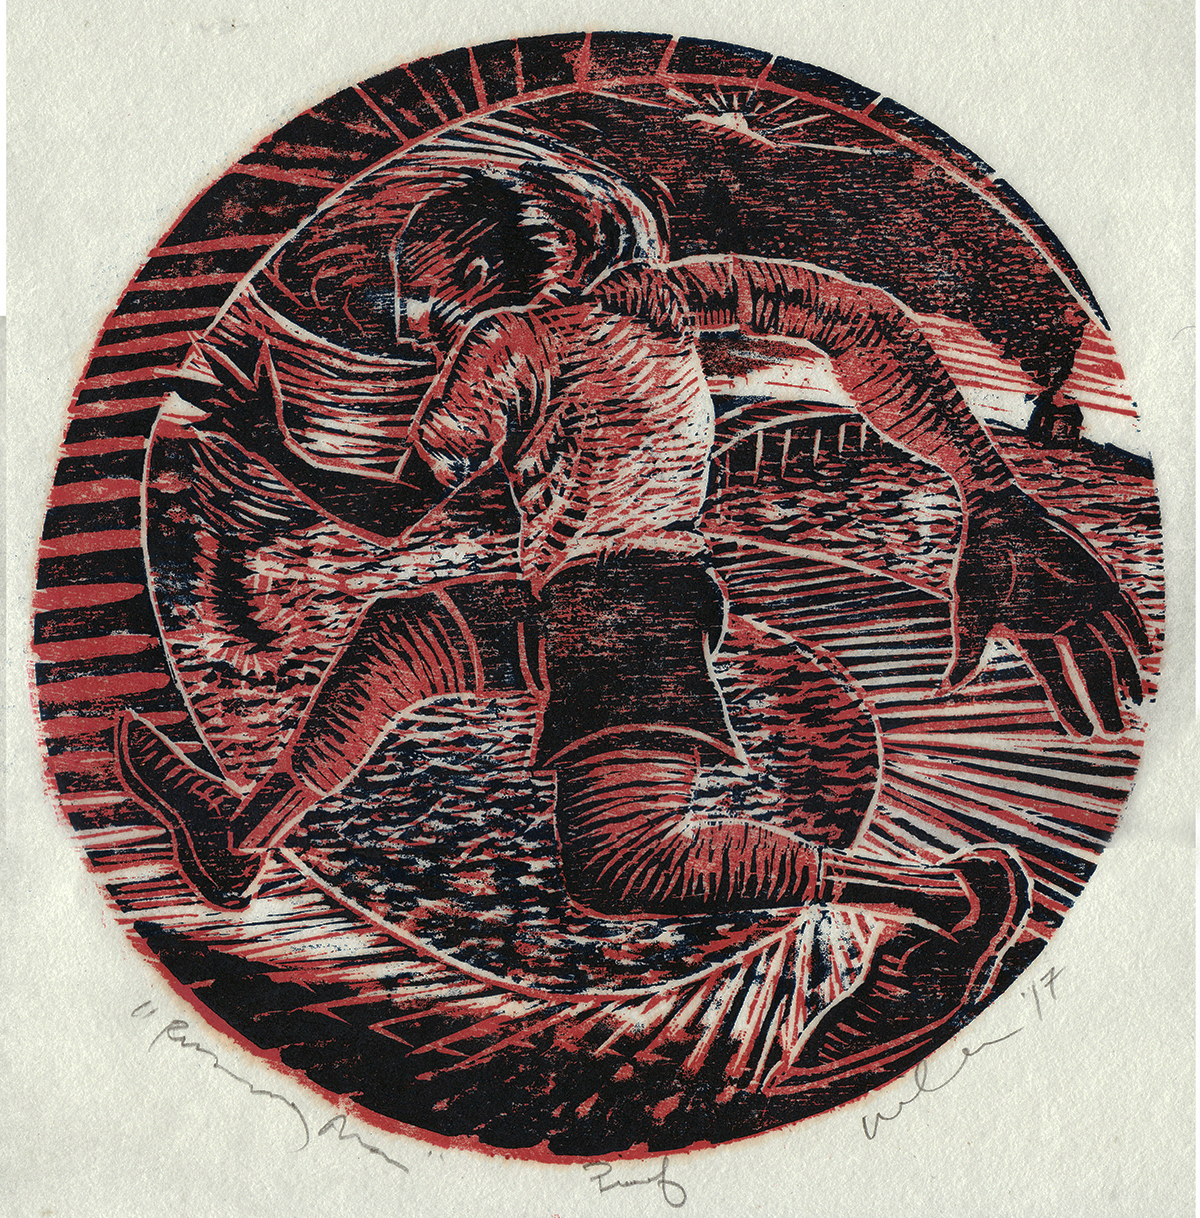 "RUNNING MAN    2017   CHIAROSCURO WOODCUT  12'"" DIAMETER"